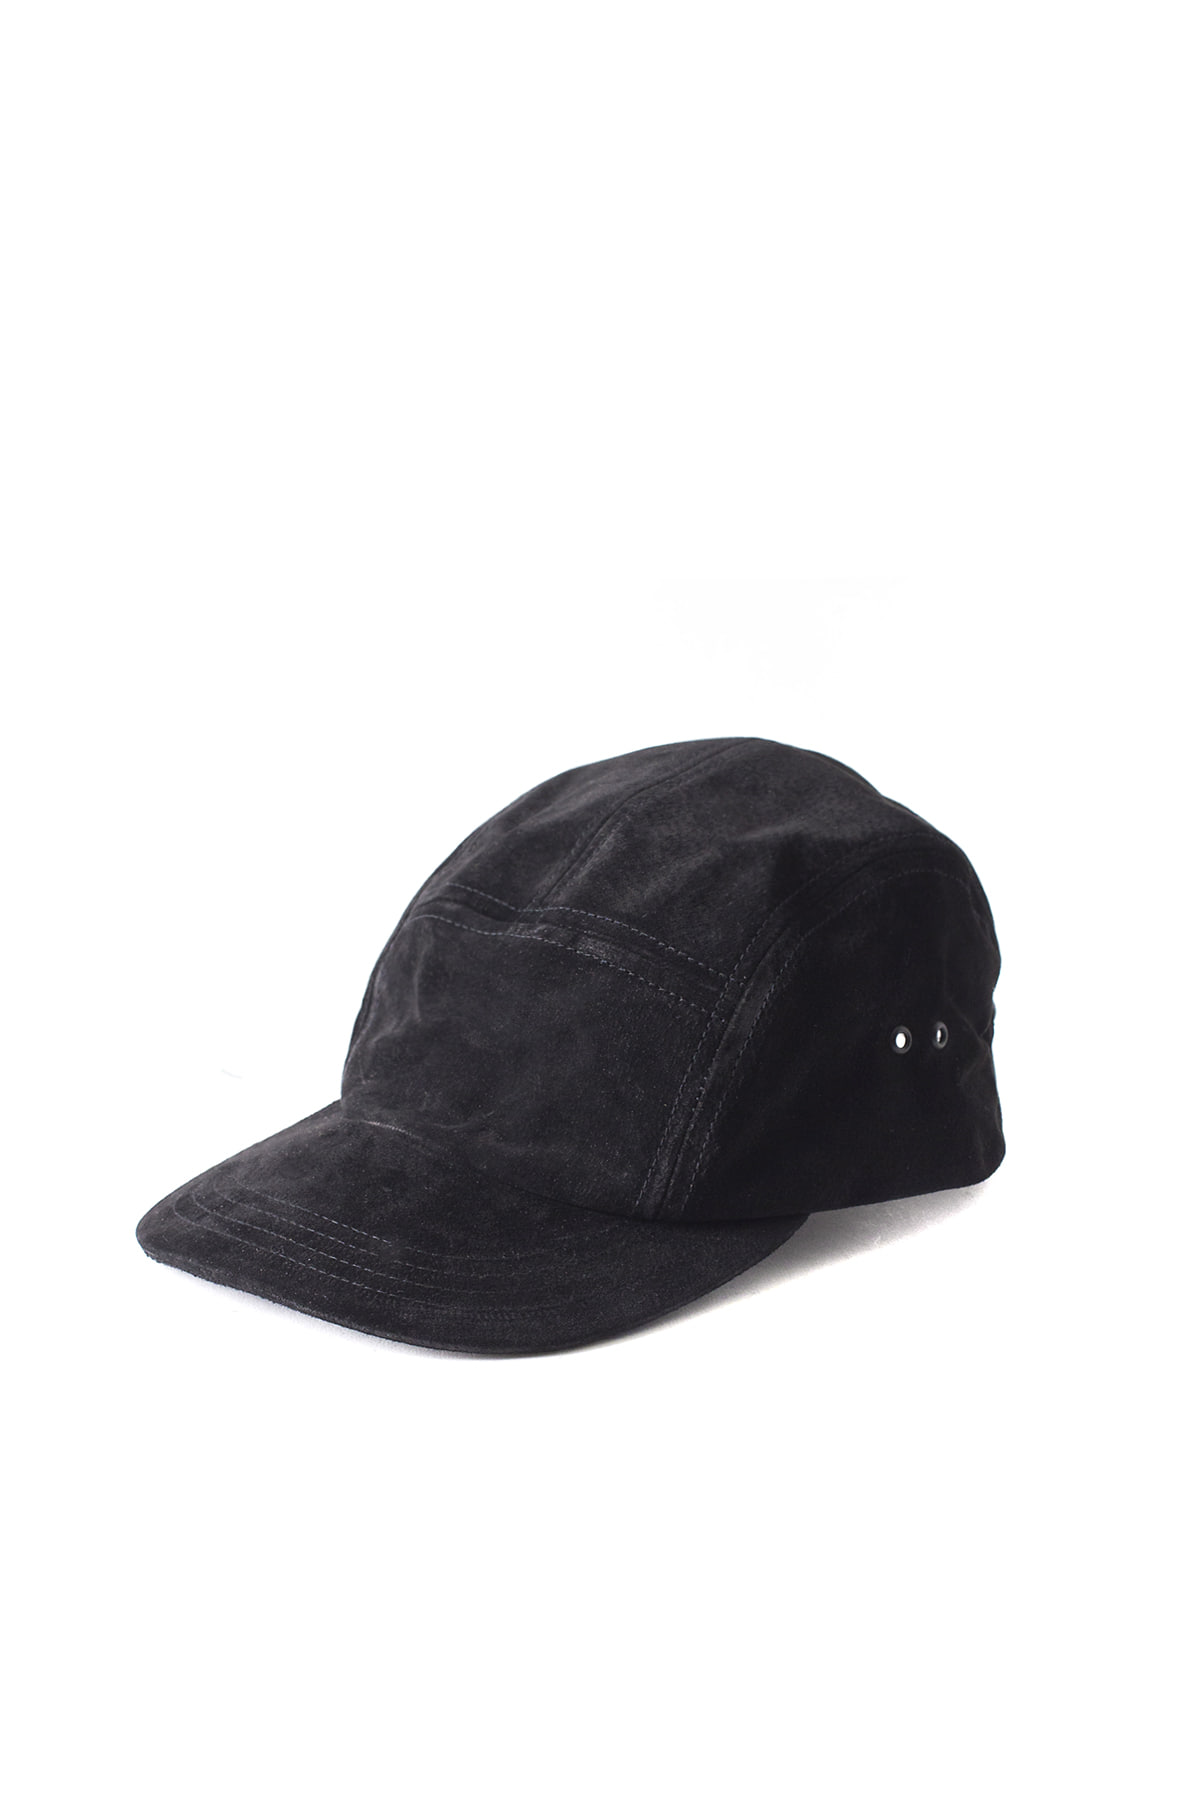 Hender Scheme : Water Proof Pig Jet Cap (Black)